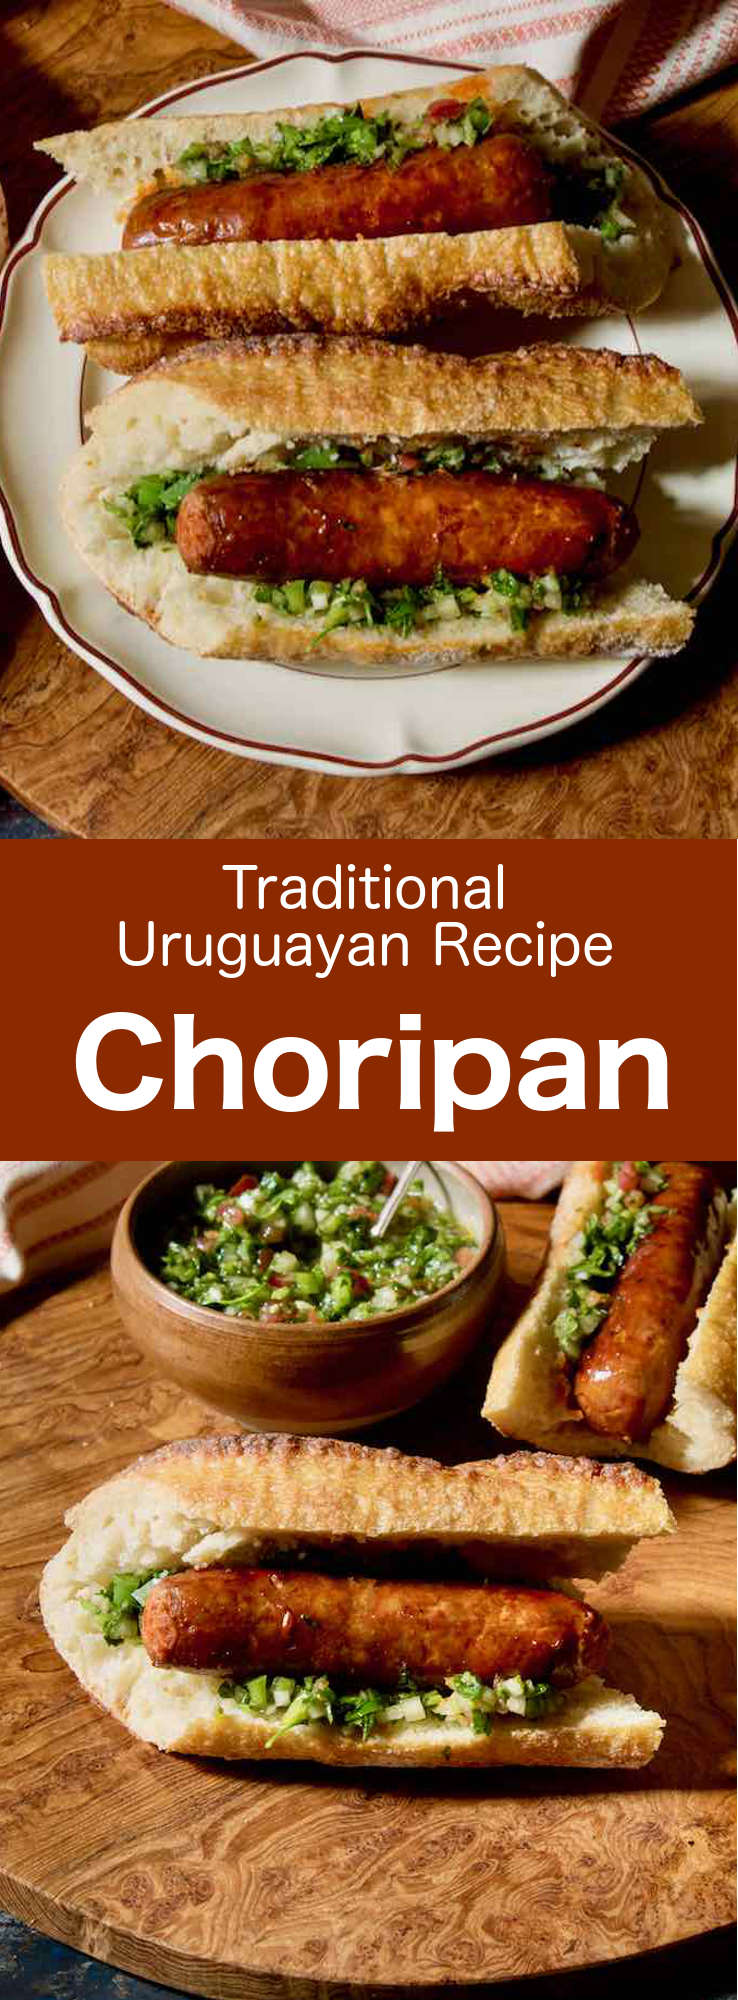 Choripán is a delicious sandwich made with chorizo ​​and chimichurri sauce popular in Uruguay, Argentina, and Chile. #UruguayanRecipe #UruguyanFood #UruguayanCuisine #ArgentinianRecipe #ArgentinianFood #ArgentinianCuisine #ChileanRecipe #ChileanFood #ChileanCuisine #LatinCusine #LatinFood #LatinRecipe #WorldCuisine #196flavors